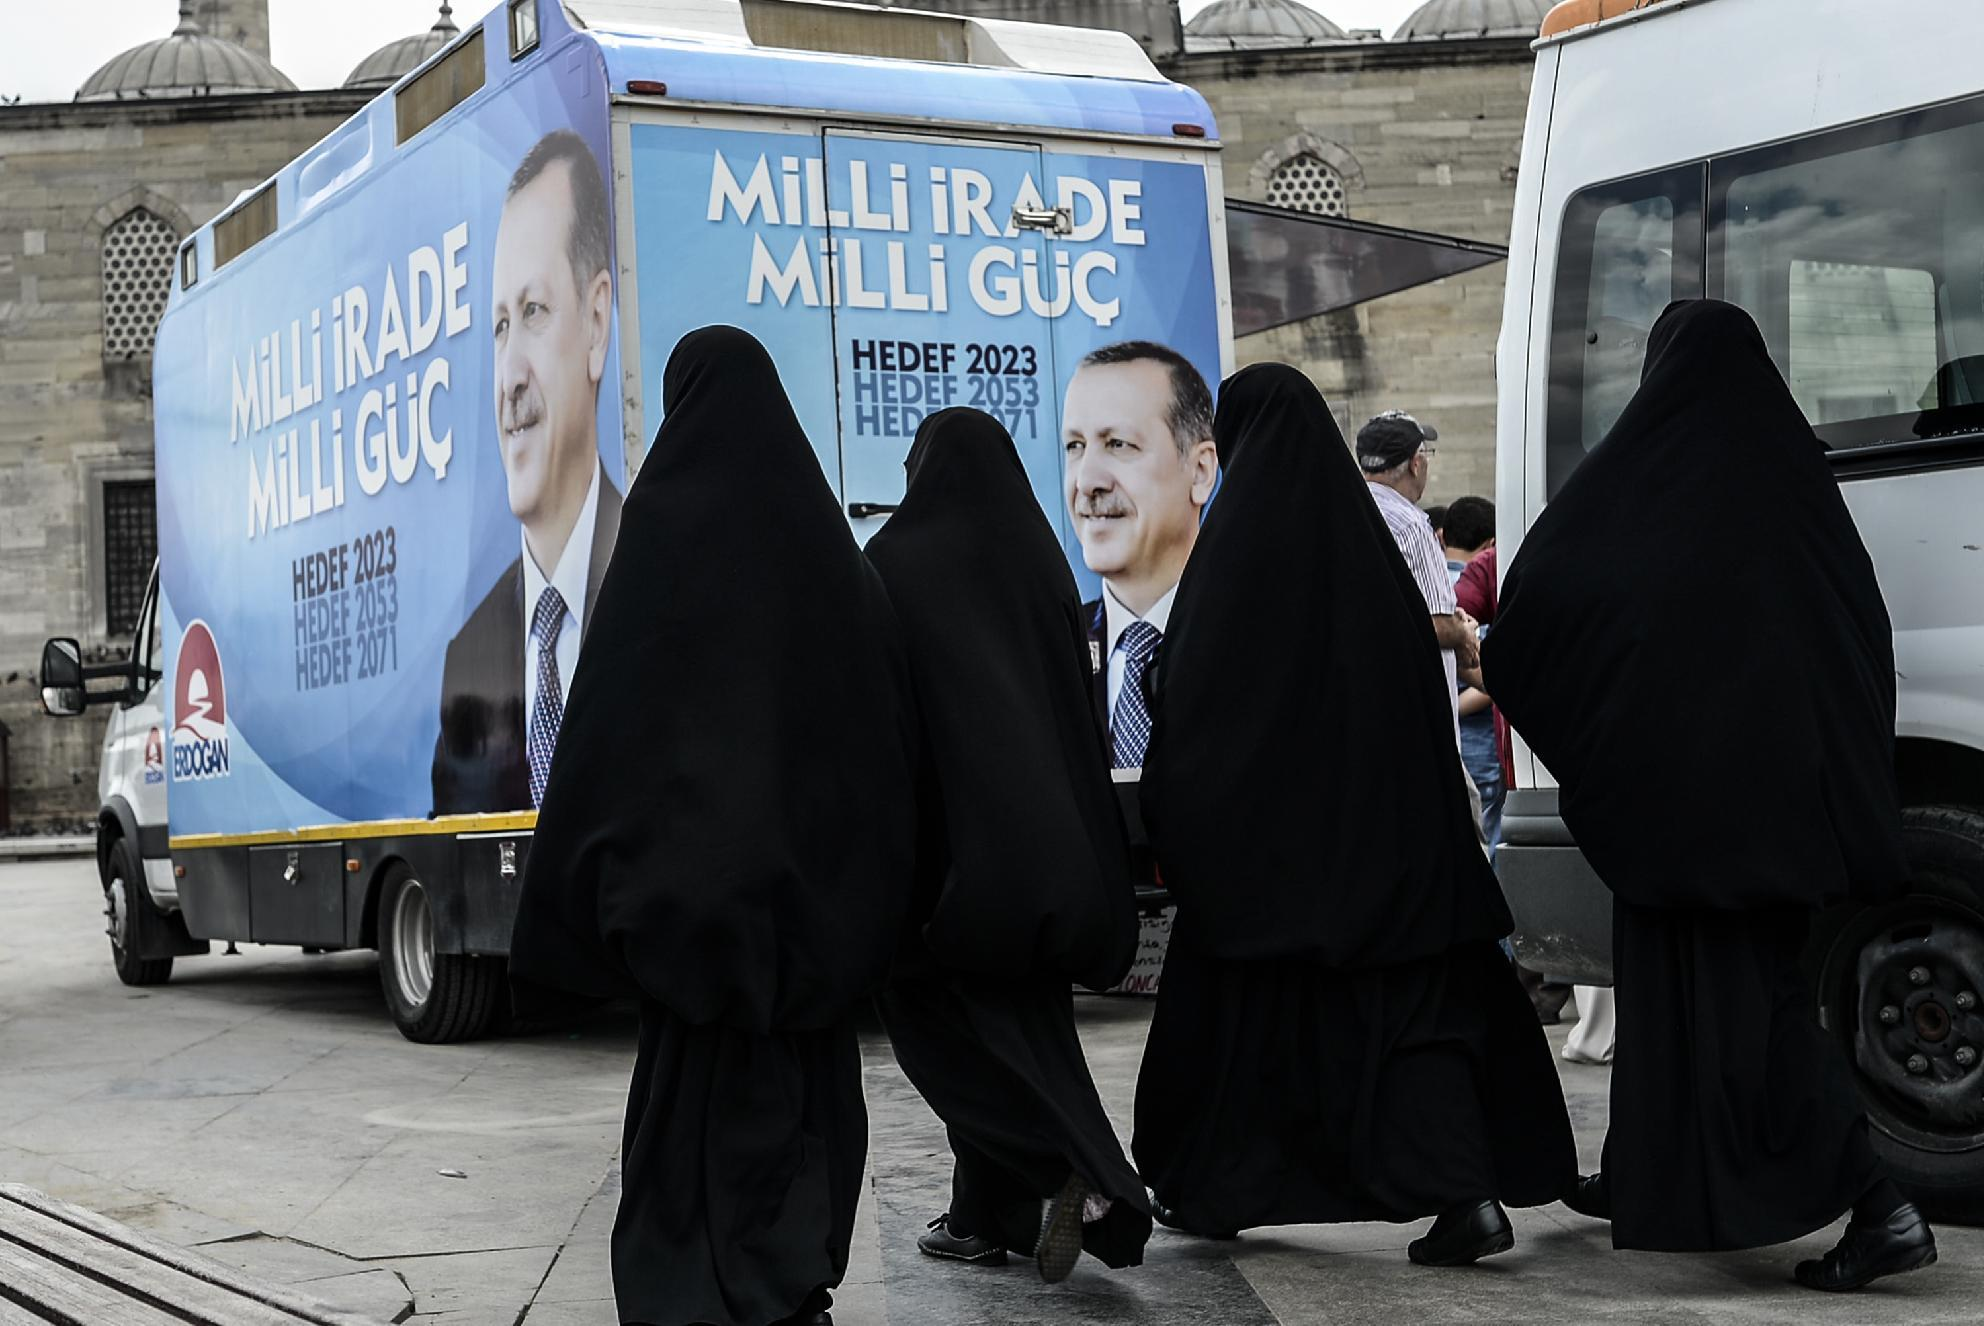 Turkey's Erdogan slams birth control as 'treason'